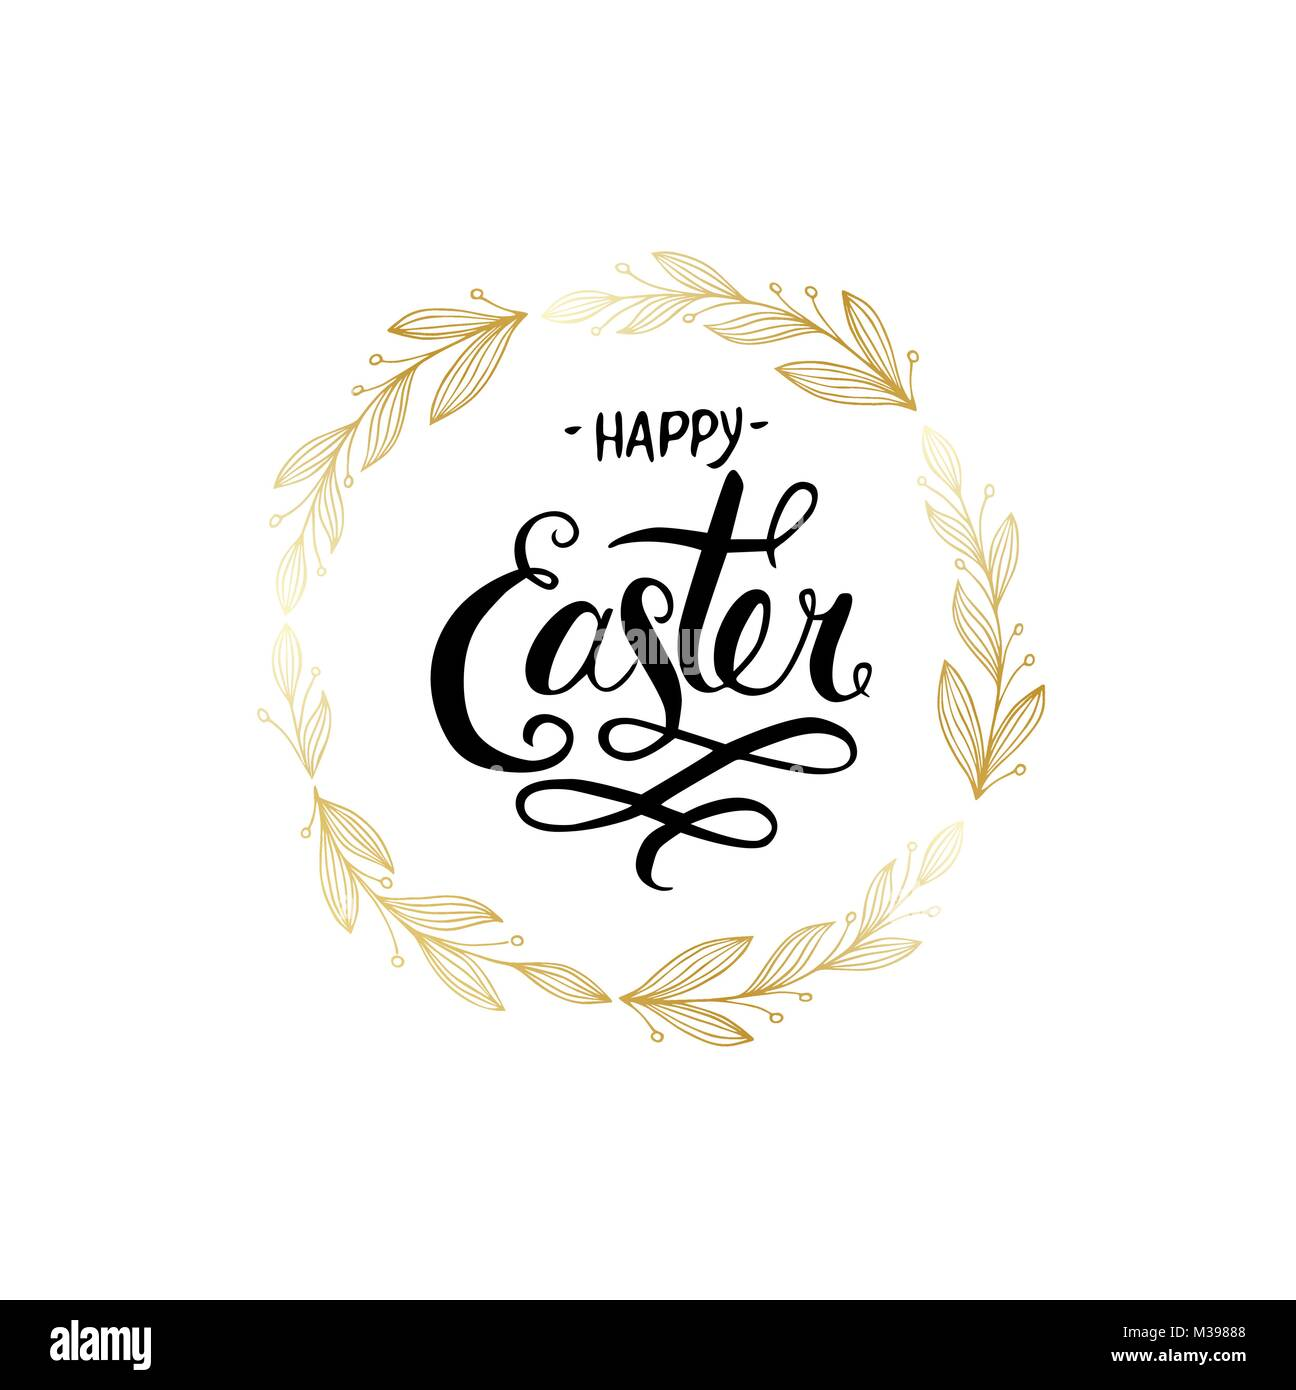 Vintage greeting card for Easter. Hand drawn lettering text Happy Easter on grunge background. Holiday card. - Stock Image